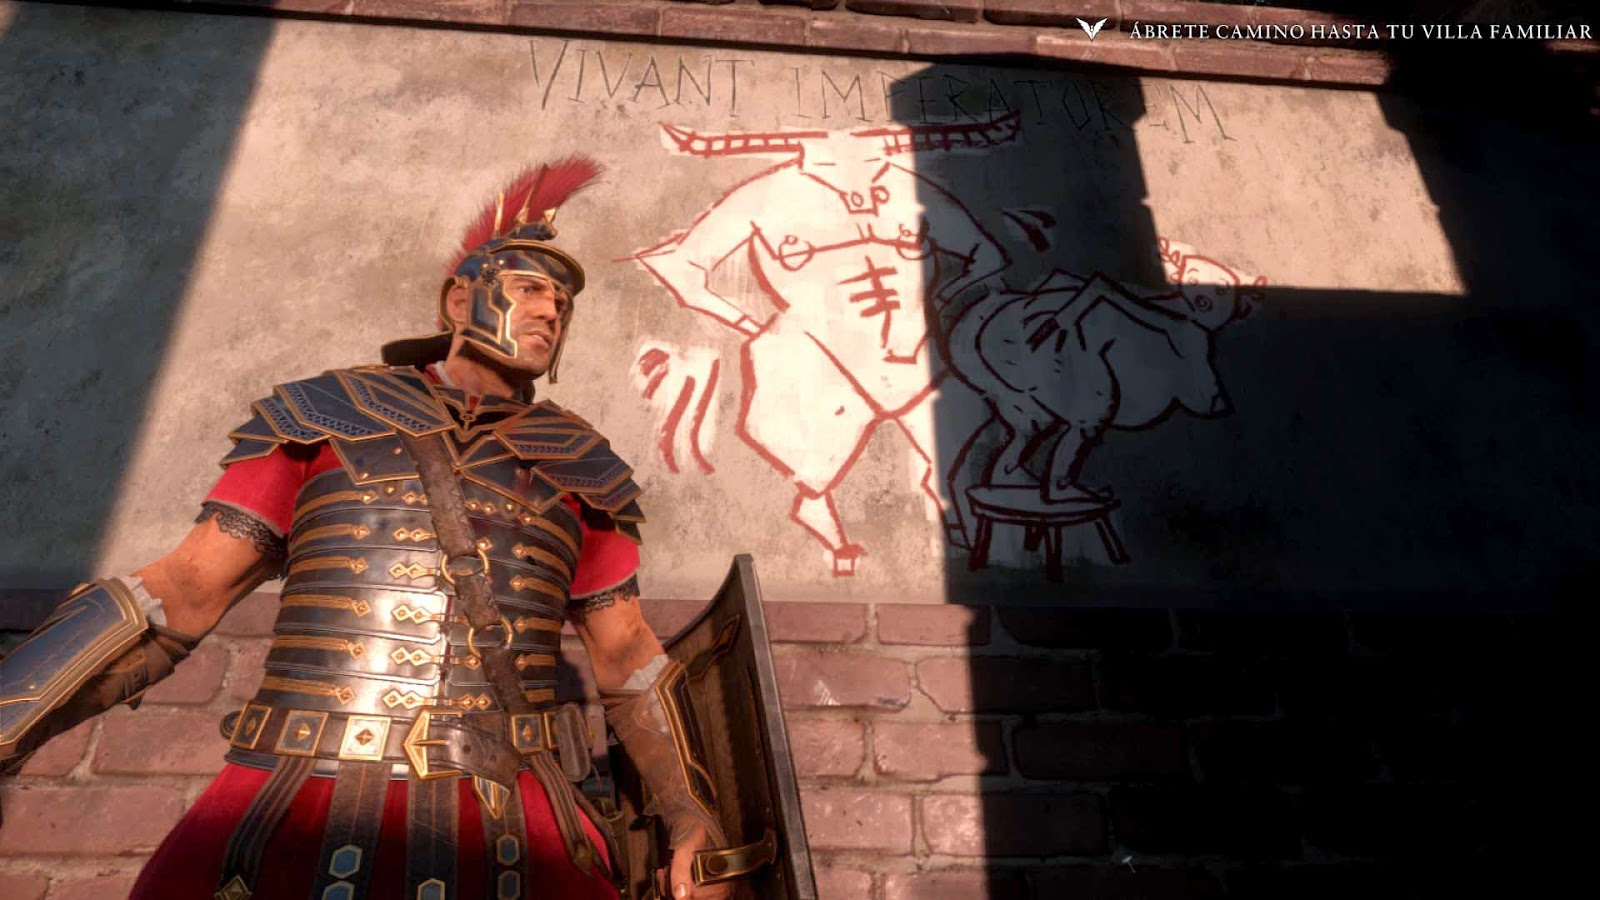 ryse son of rome pintada pared